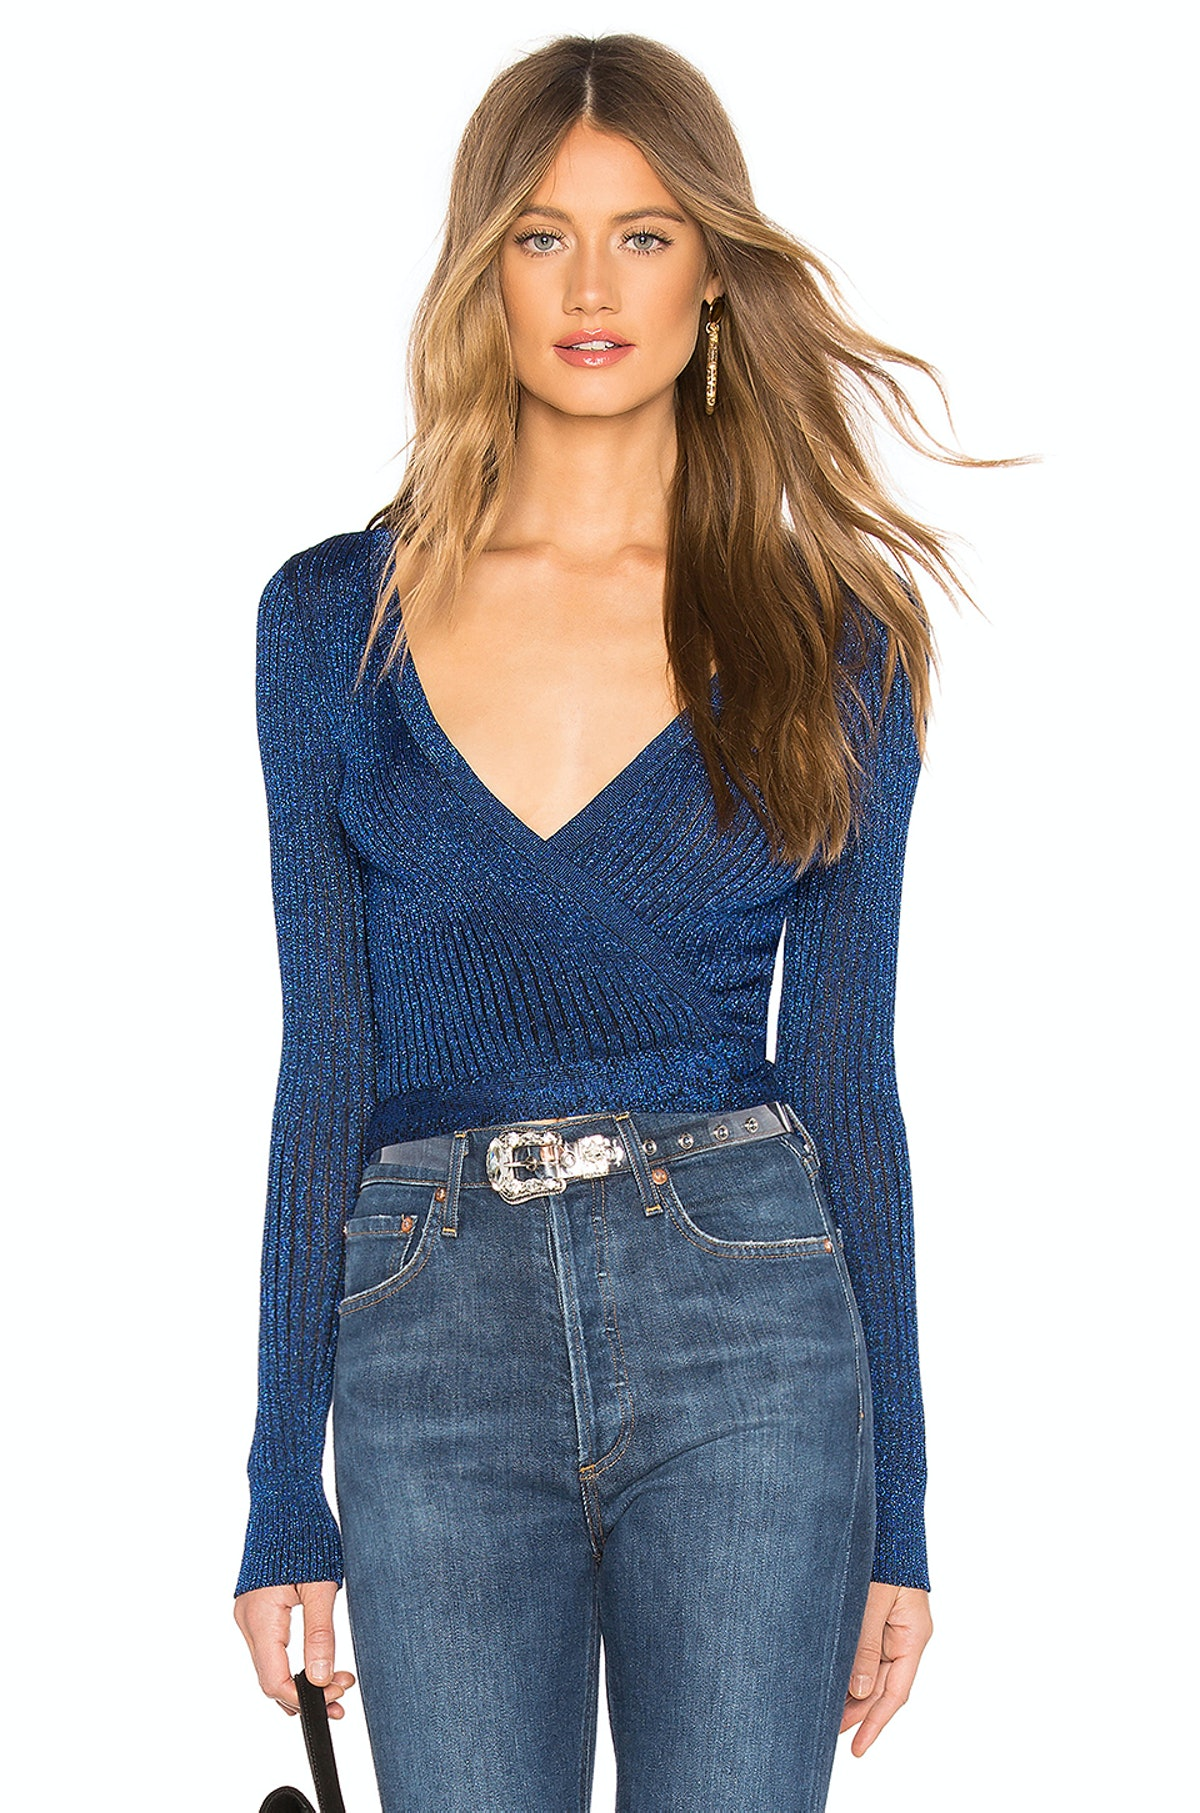 By The Way Raven Wrap Sweater Top